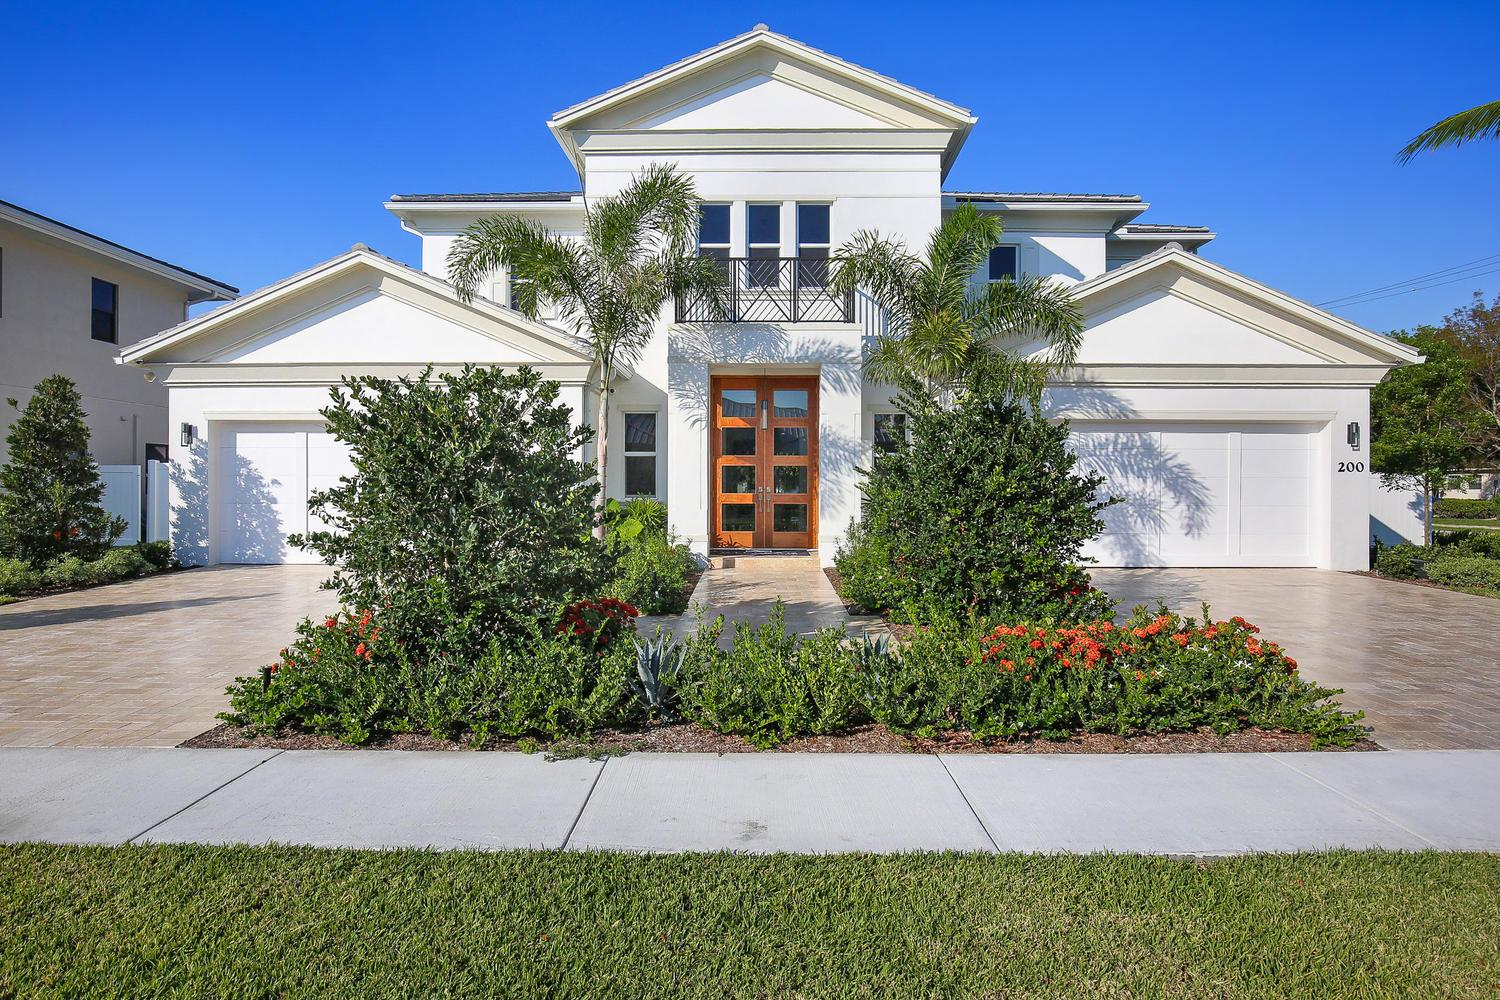 Один семья для того Продажа на Boca Collection - Villa Valle Boca Raton, Florida 33427 United States